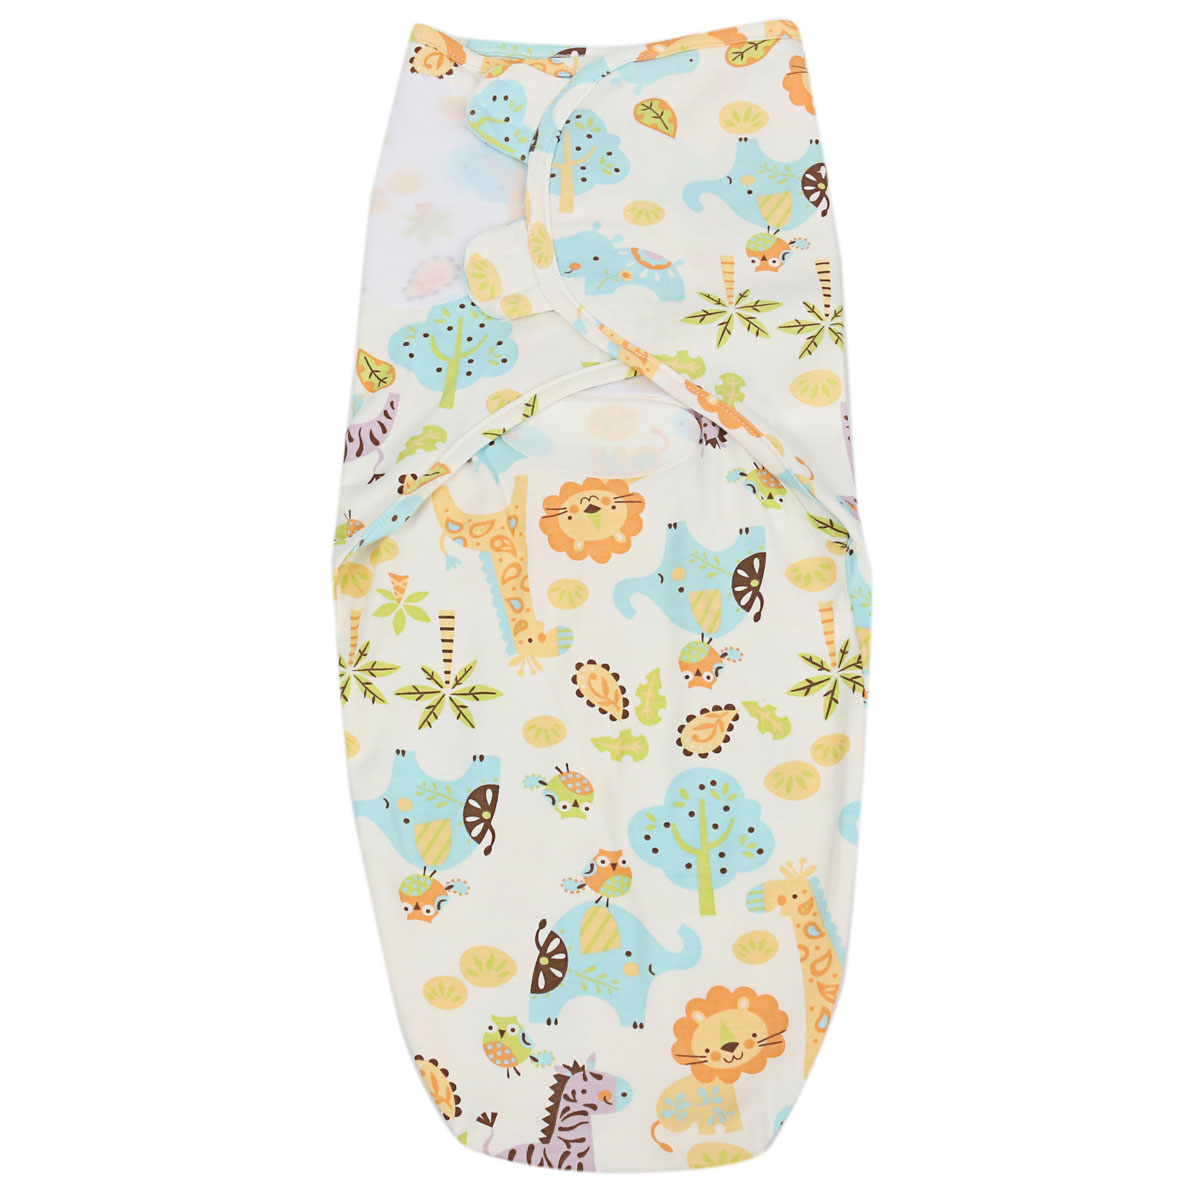 Brand 0-12 Months new Baby Infant 100% Cotton Swaddle Wrap Swaddling Blanket